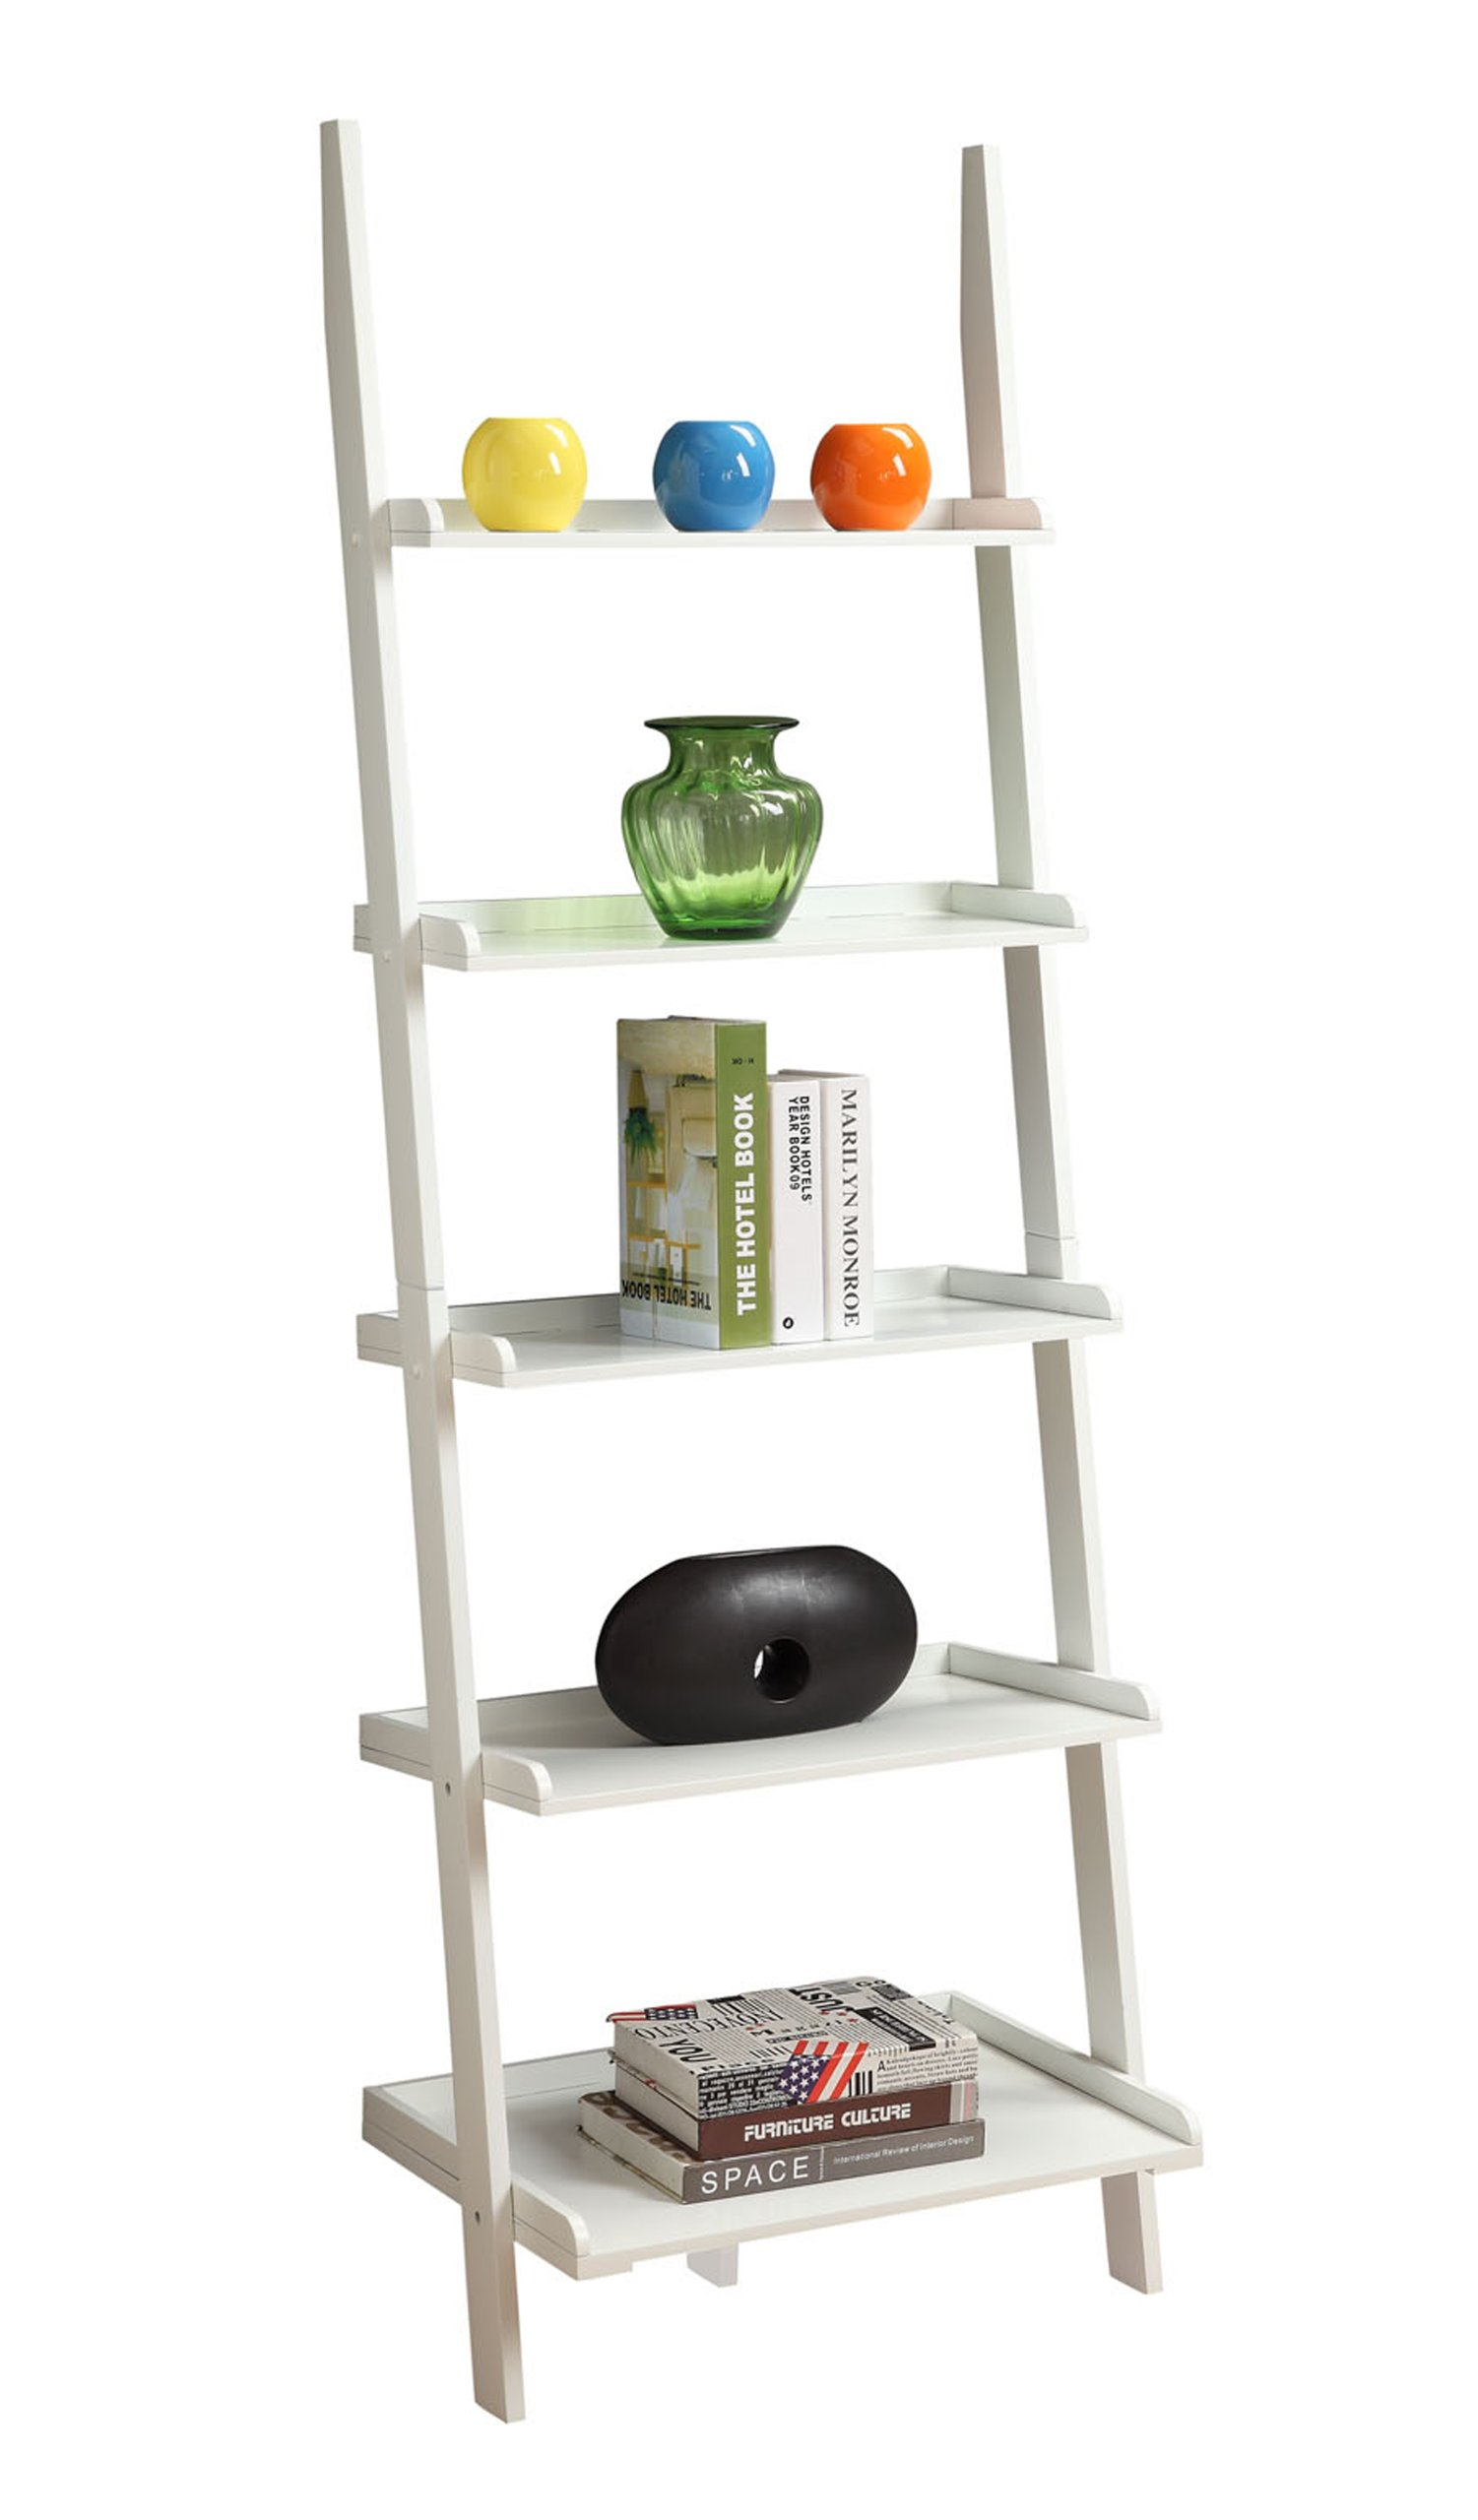 Convenience Concepts French Country Bookshelf Ladder, White by Convenience Concepts (Image #2)